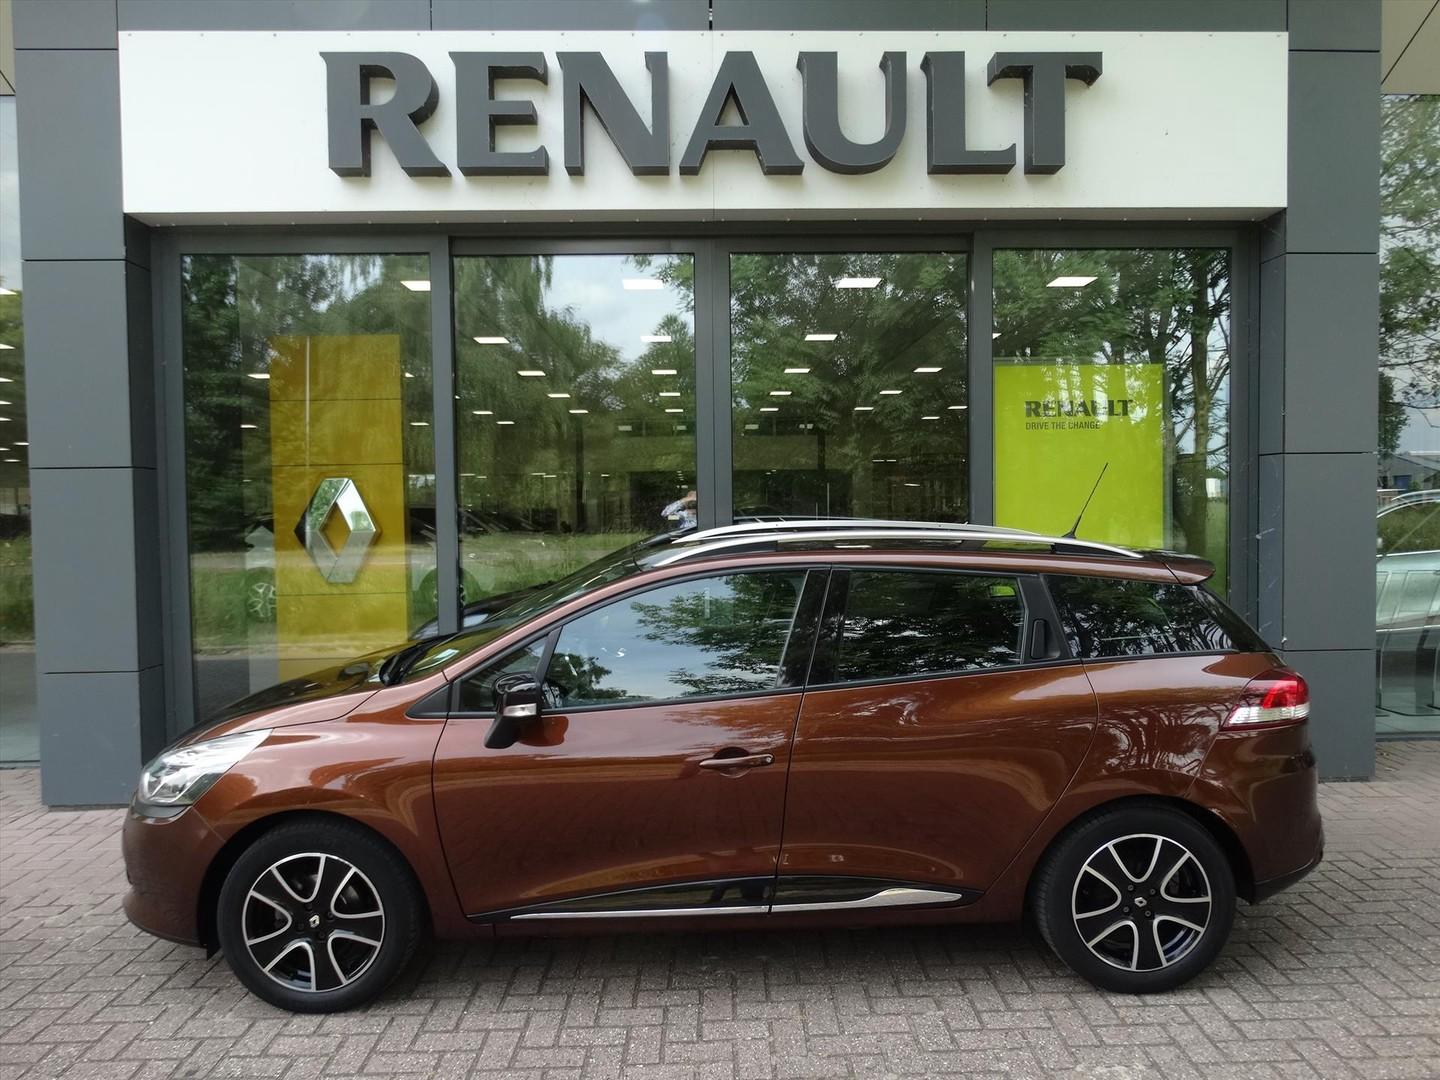 Renault Clio Estate 0.9 tce 90 expression